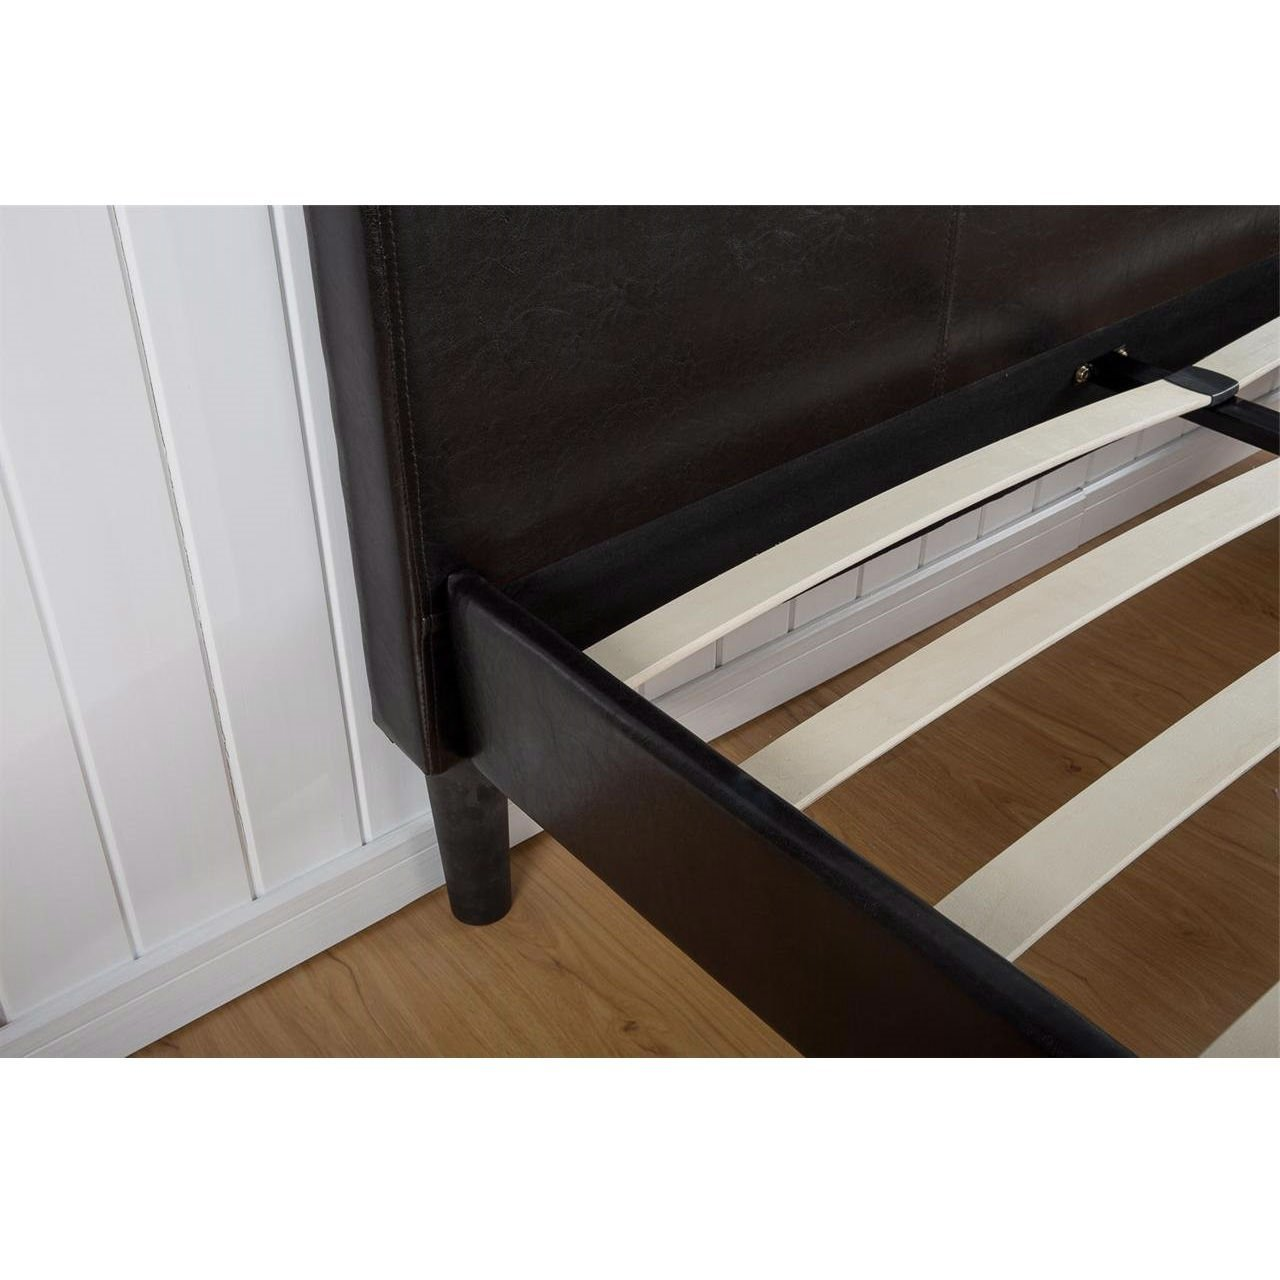 Llian Platform Bed Queen Size.